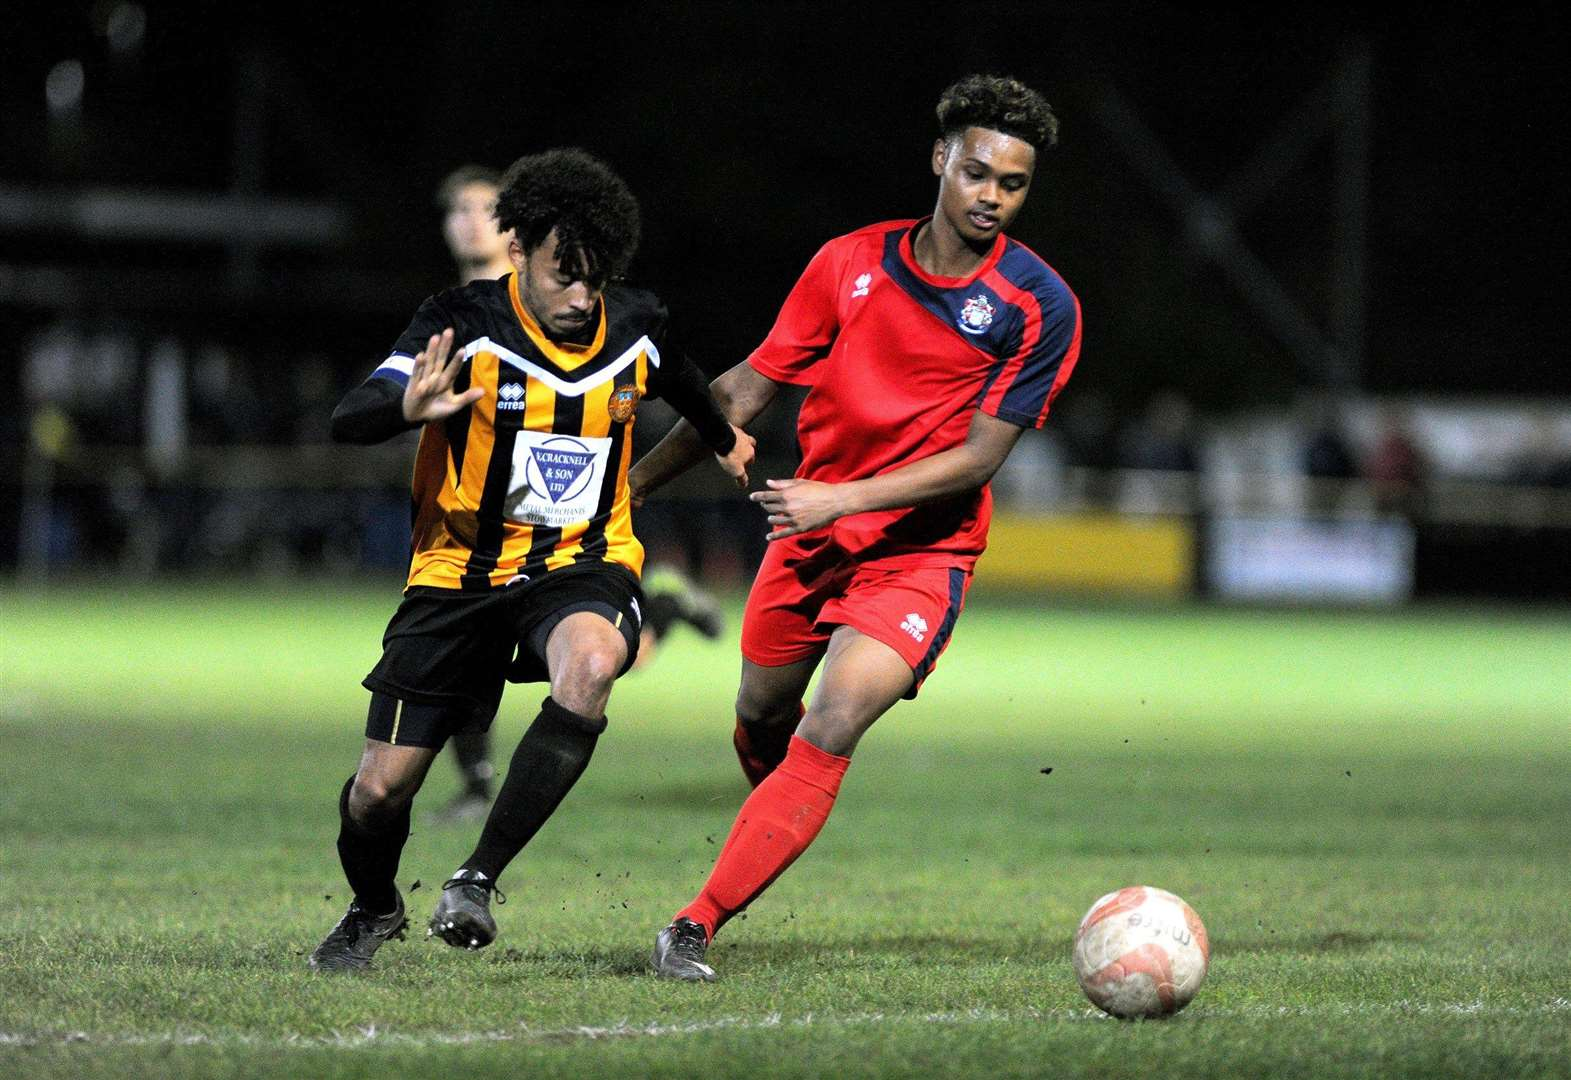 Wardley will not to rush back Hadleigh's 2017/18 top scorer Andrews from injury